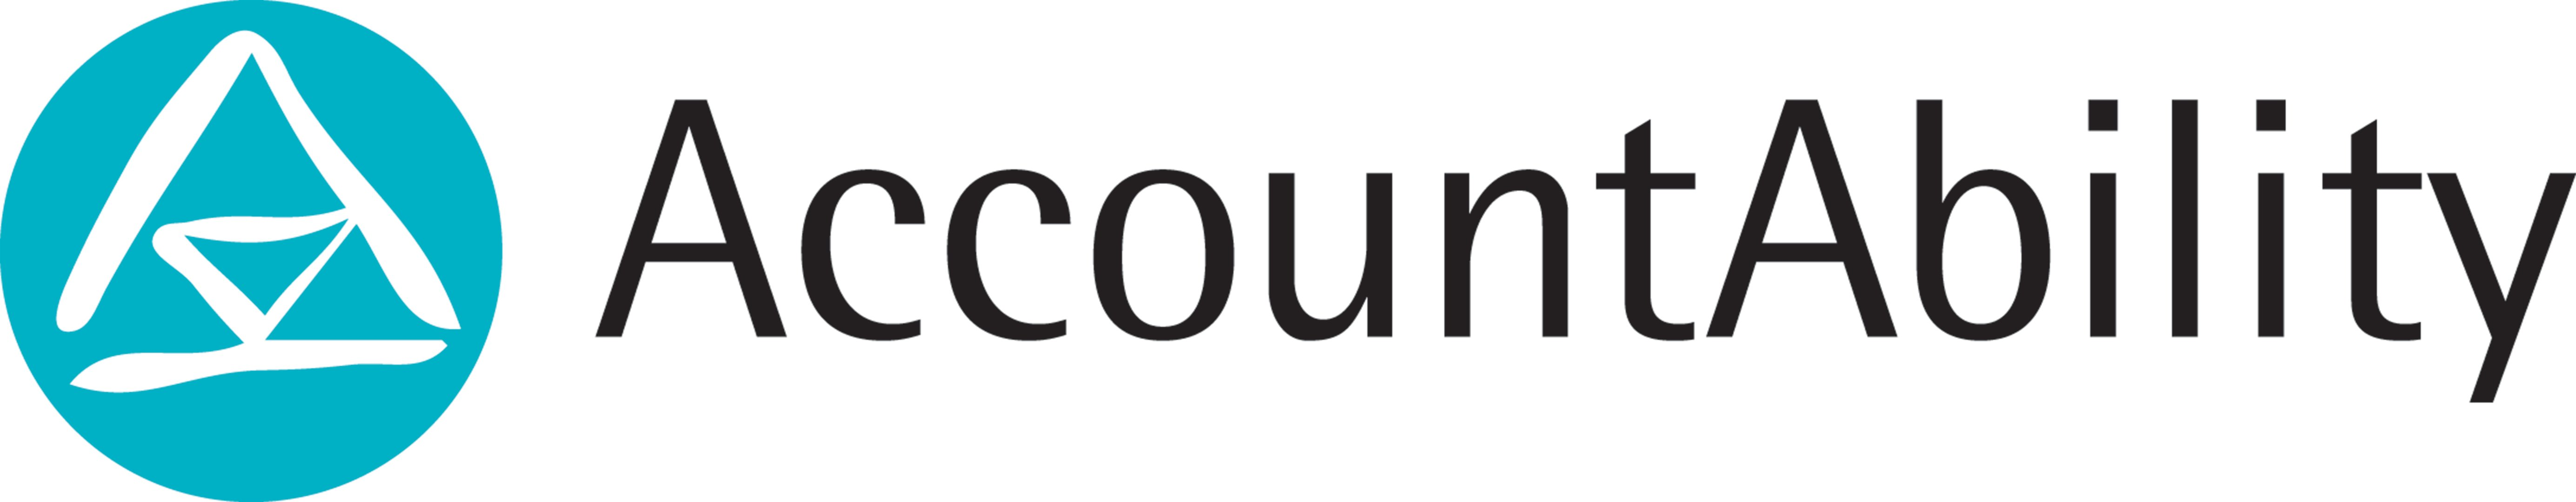 AccountAbility-vector-logo